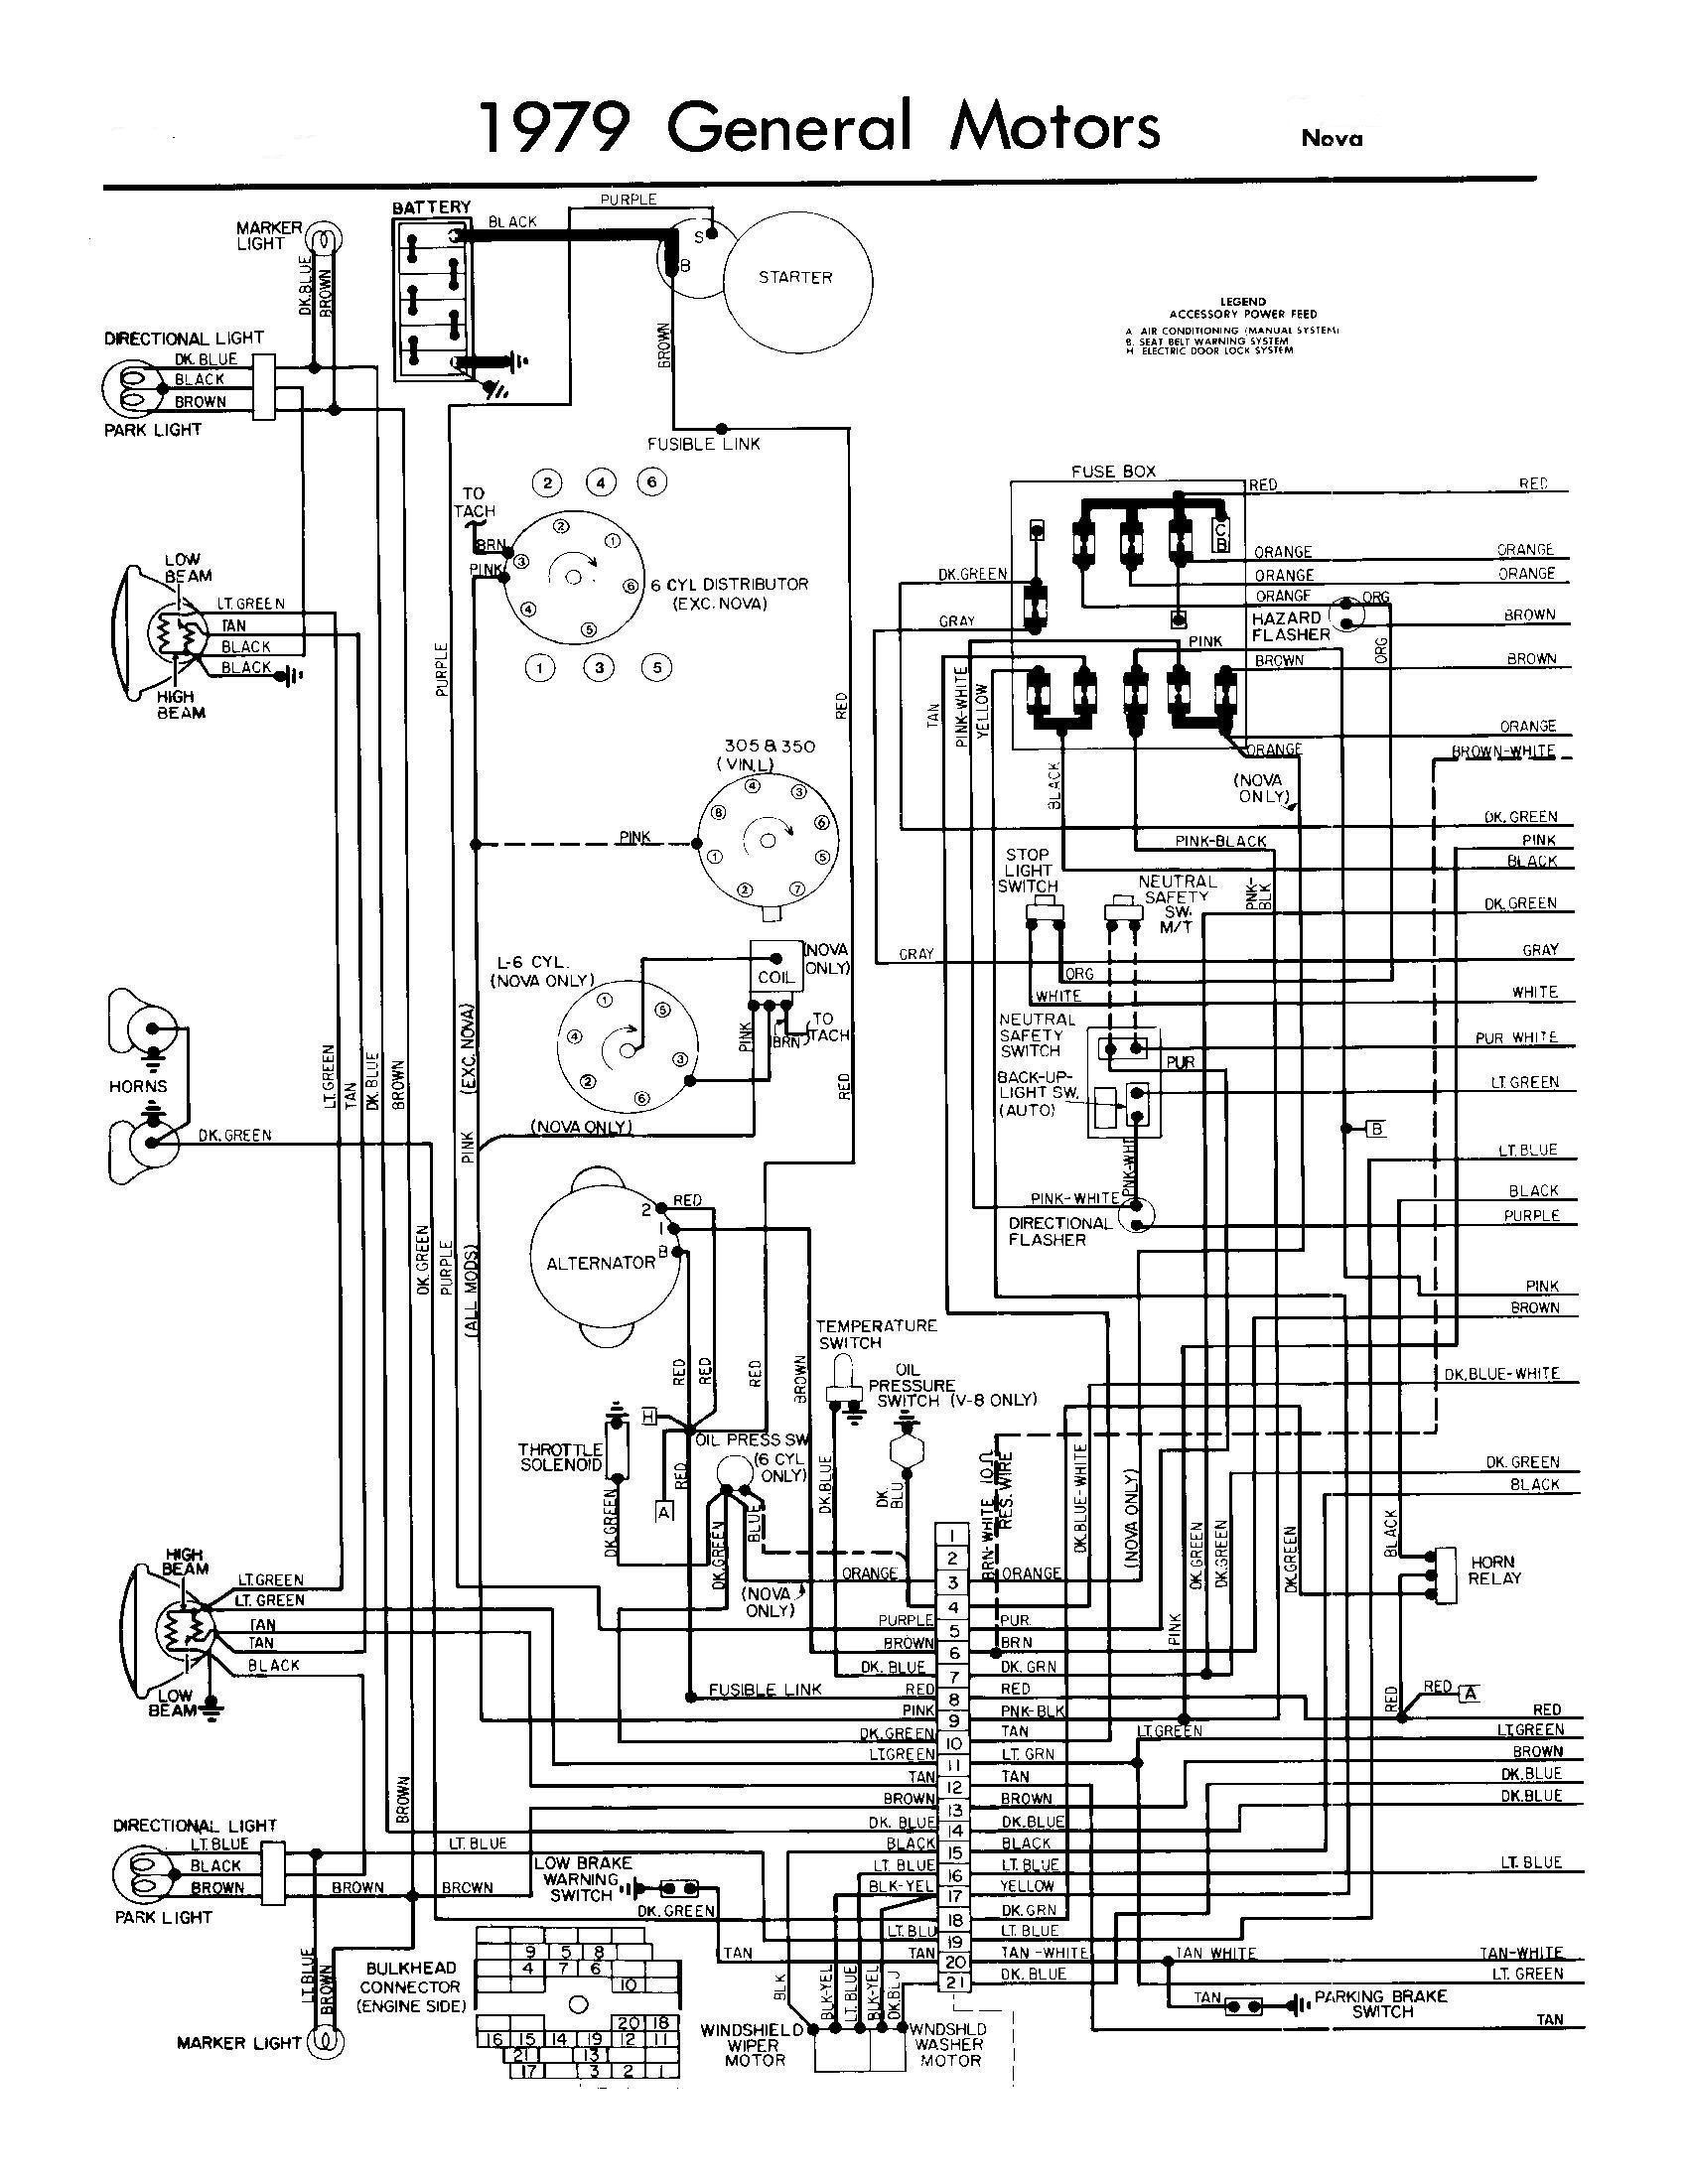 79 Corvette Wiper Wiring Diagram | Wiring Diagram Echo on 1979 corvette repair manual, 1979 corvette horn diagram, 1979 corvette antenna, 1979 corvette air conditioning diagram, 1979 corvette power steering, 1979 corvette ac diagram, 1979 corvette ac wiring, 1970 corvette vacuum diagram, 1979 corvette headlight wiring, 1979 corvette exhaust diagram, 1979 corvette tachometer wiring, 1979 corvette fuse, 1979 corvette brake, 1979 corvette door panel removal, 1979 corvette schematic, 1979 corvette regulator, 1979 corvette owner's manual, 1979 corvette ignition, 1979 corvette engine swap, 1979 corvette neutral safety switch,